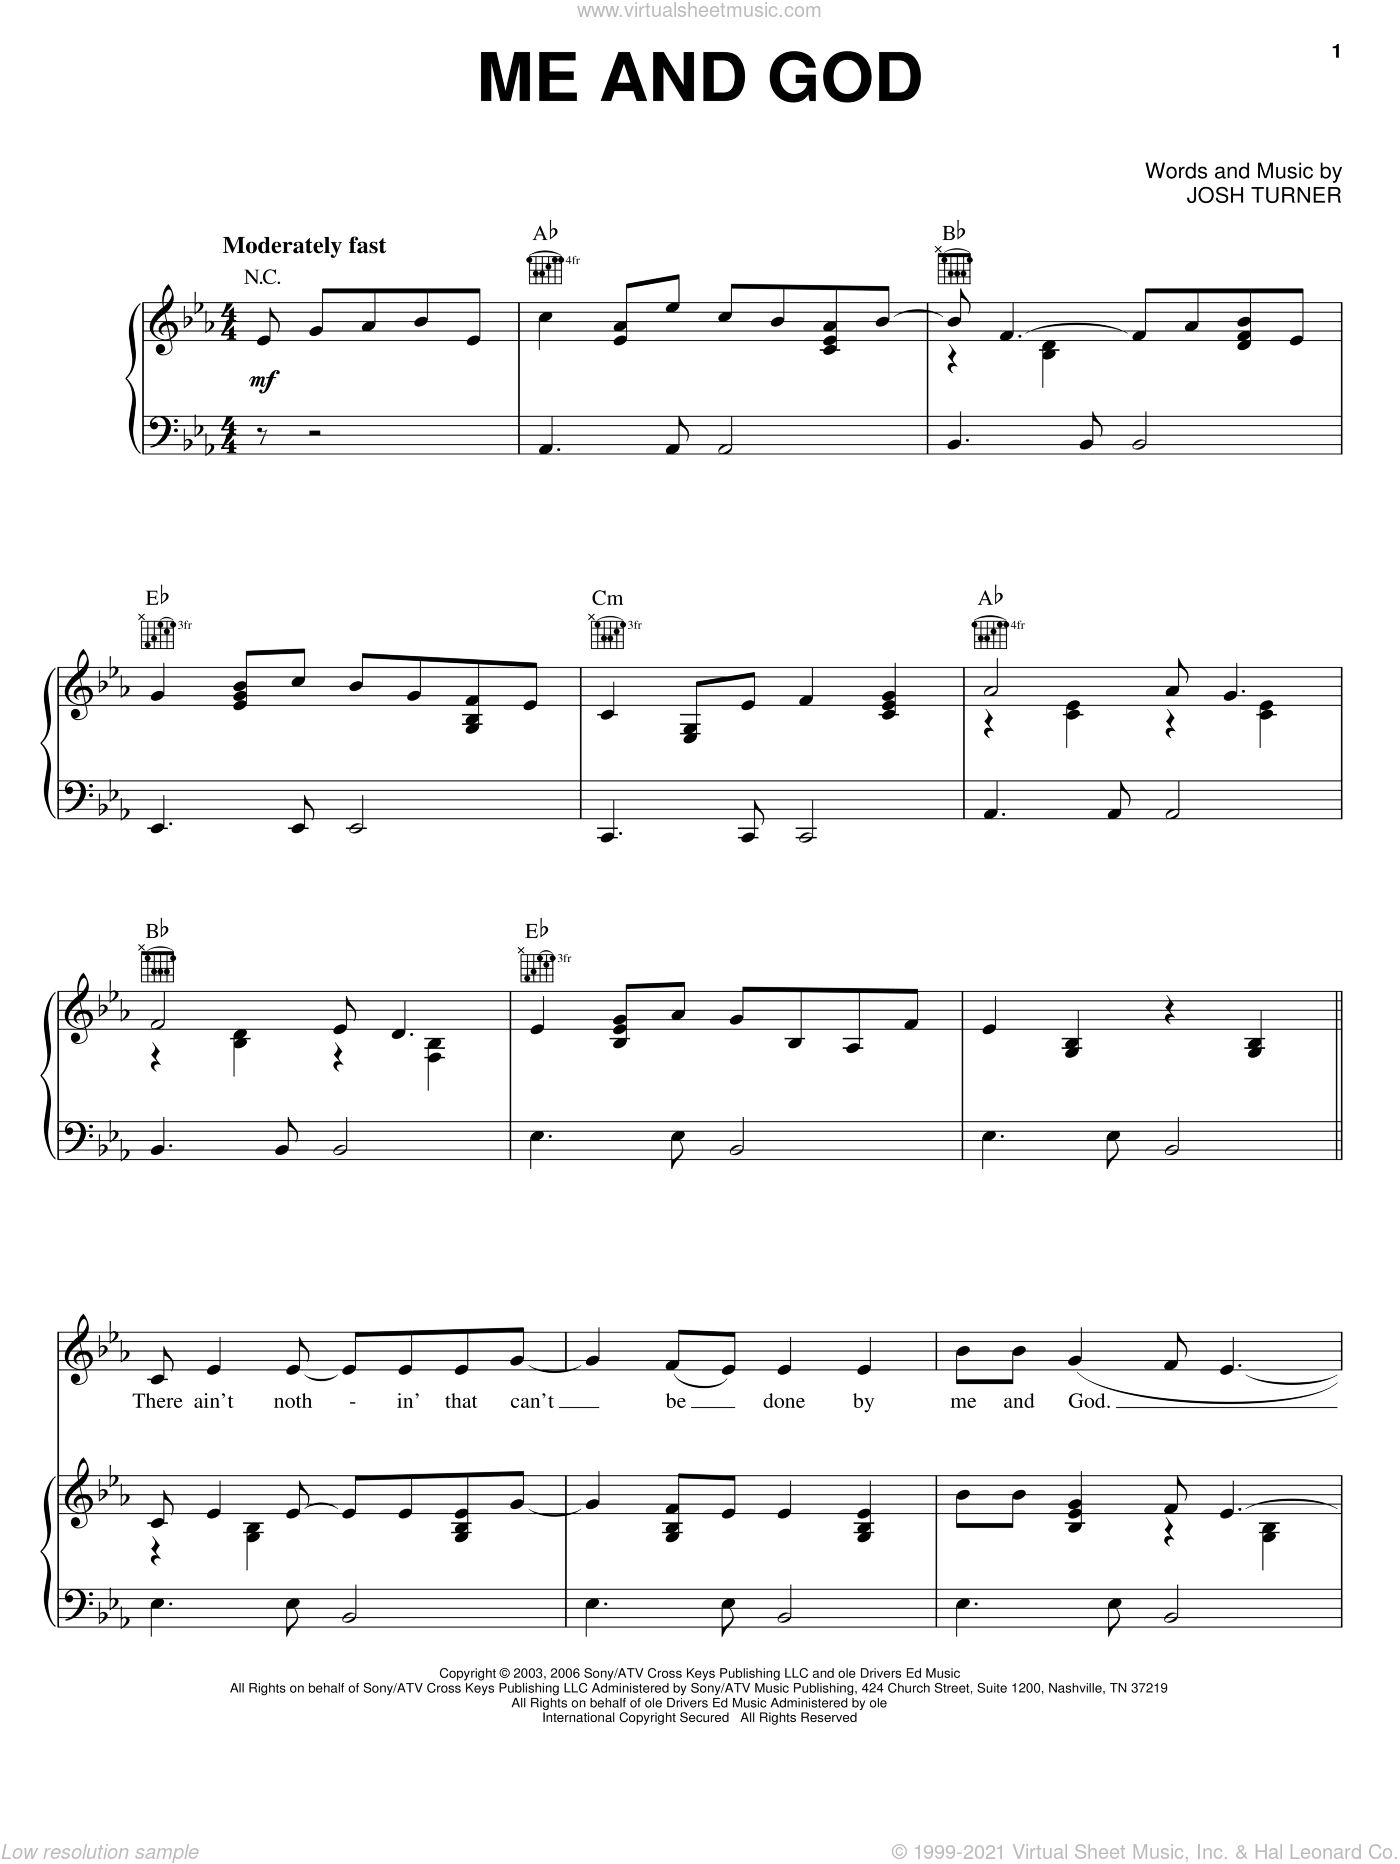 Me And God sheet music for voice, piano or guitar by Josh Turner